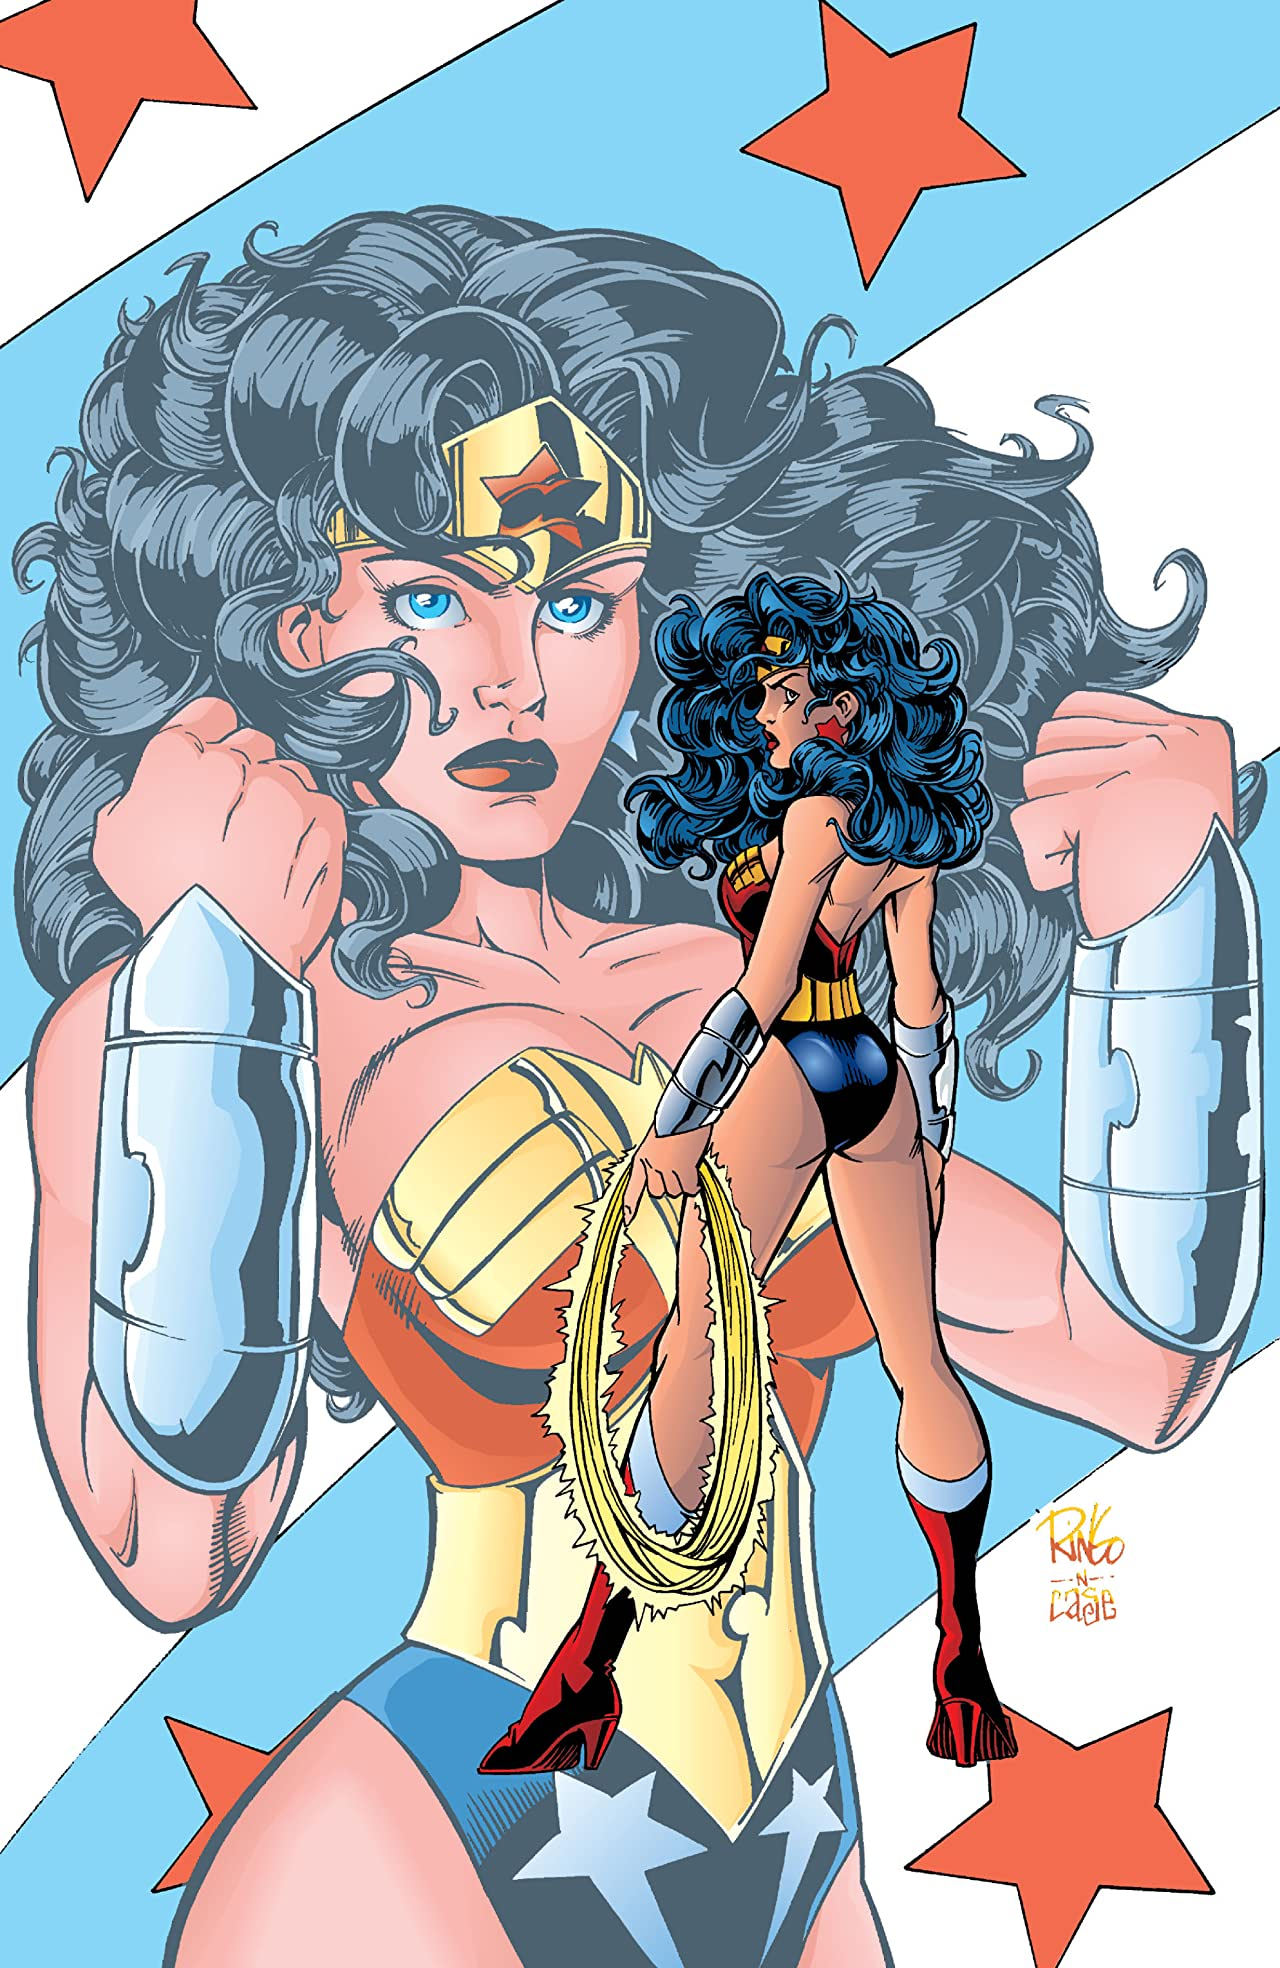 Wonder Woman Gallery (1996) #1